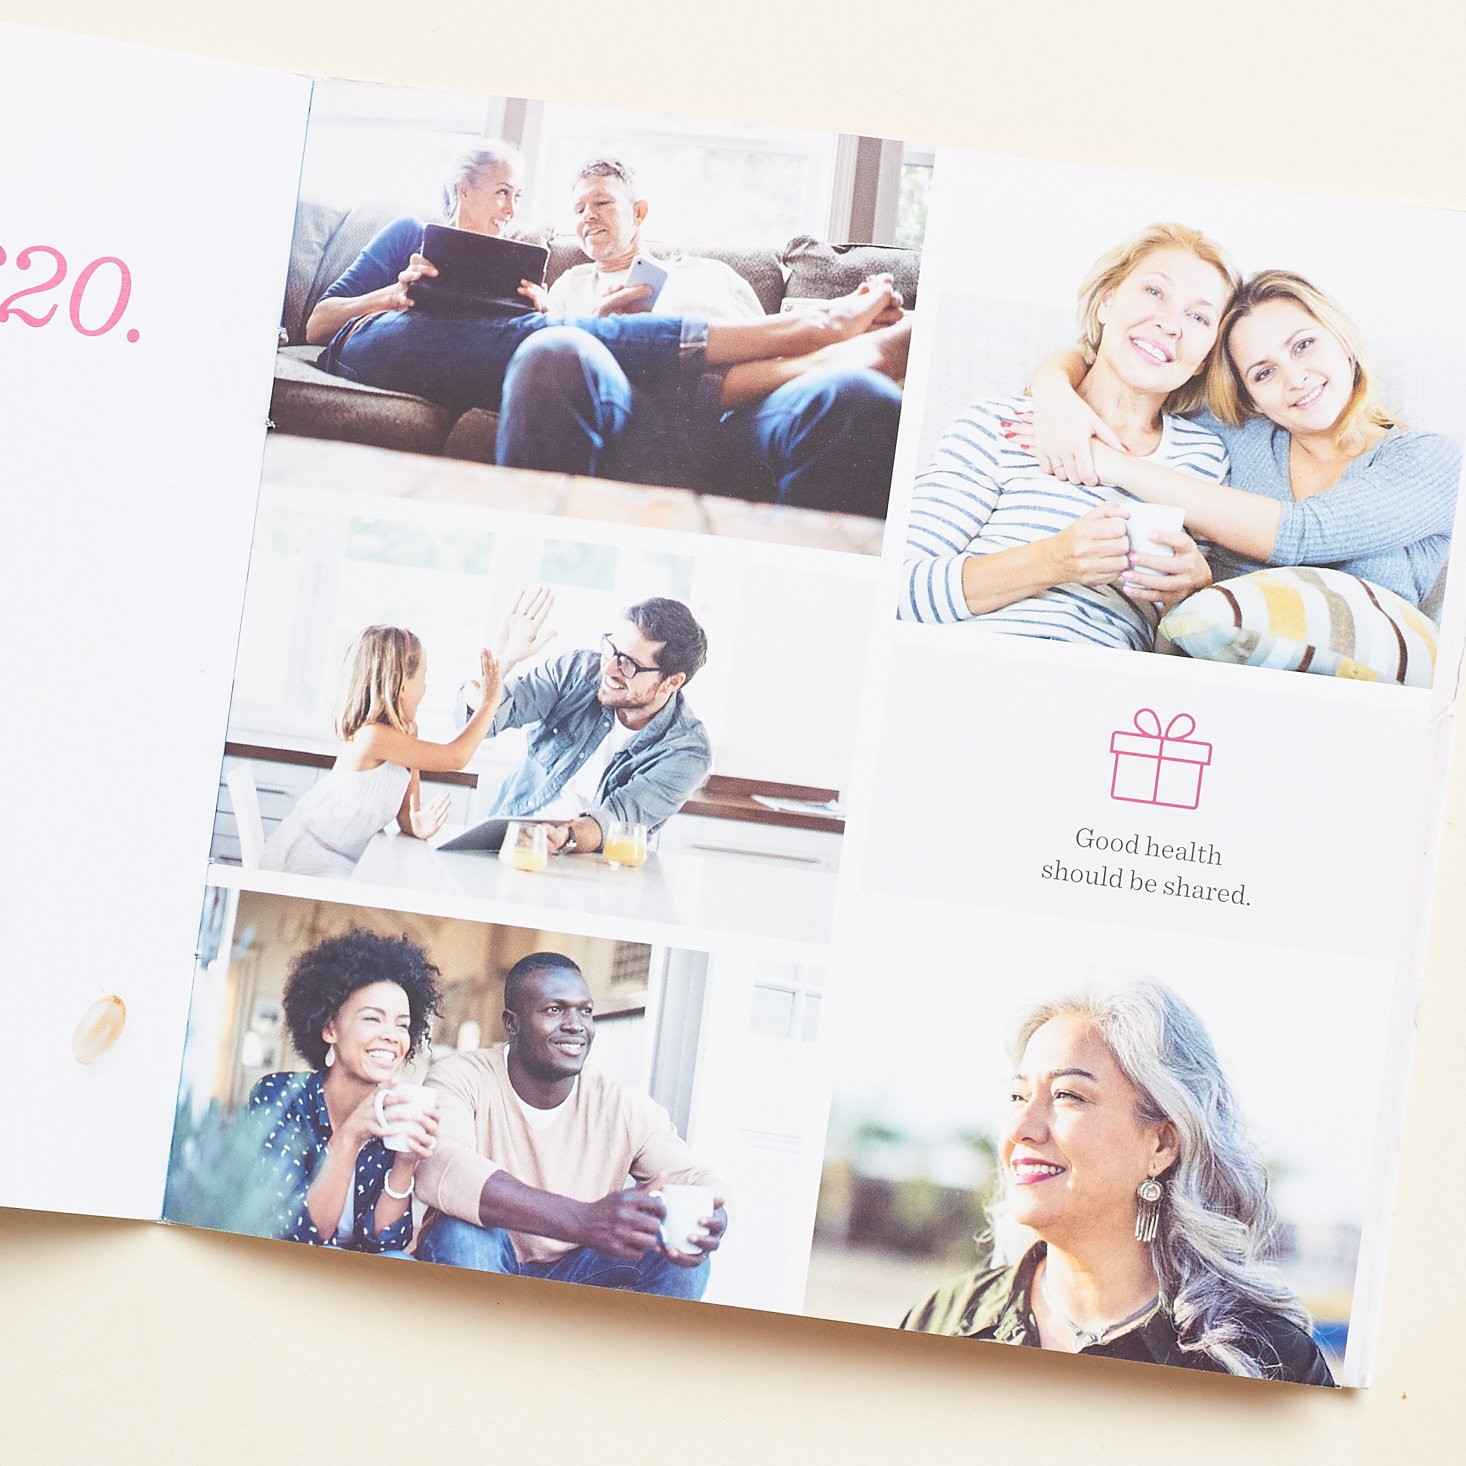 photos of people to illustrate referral program